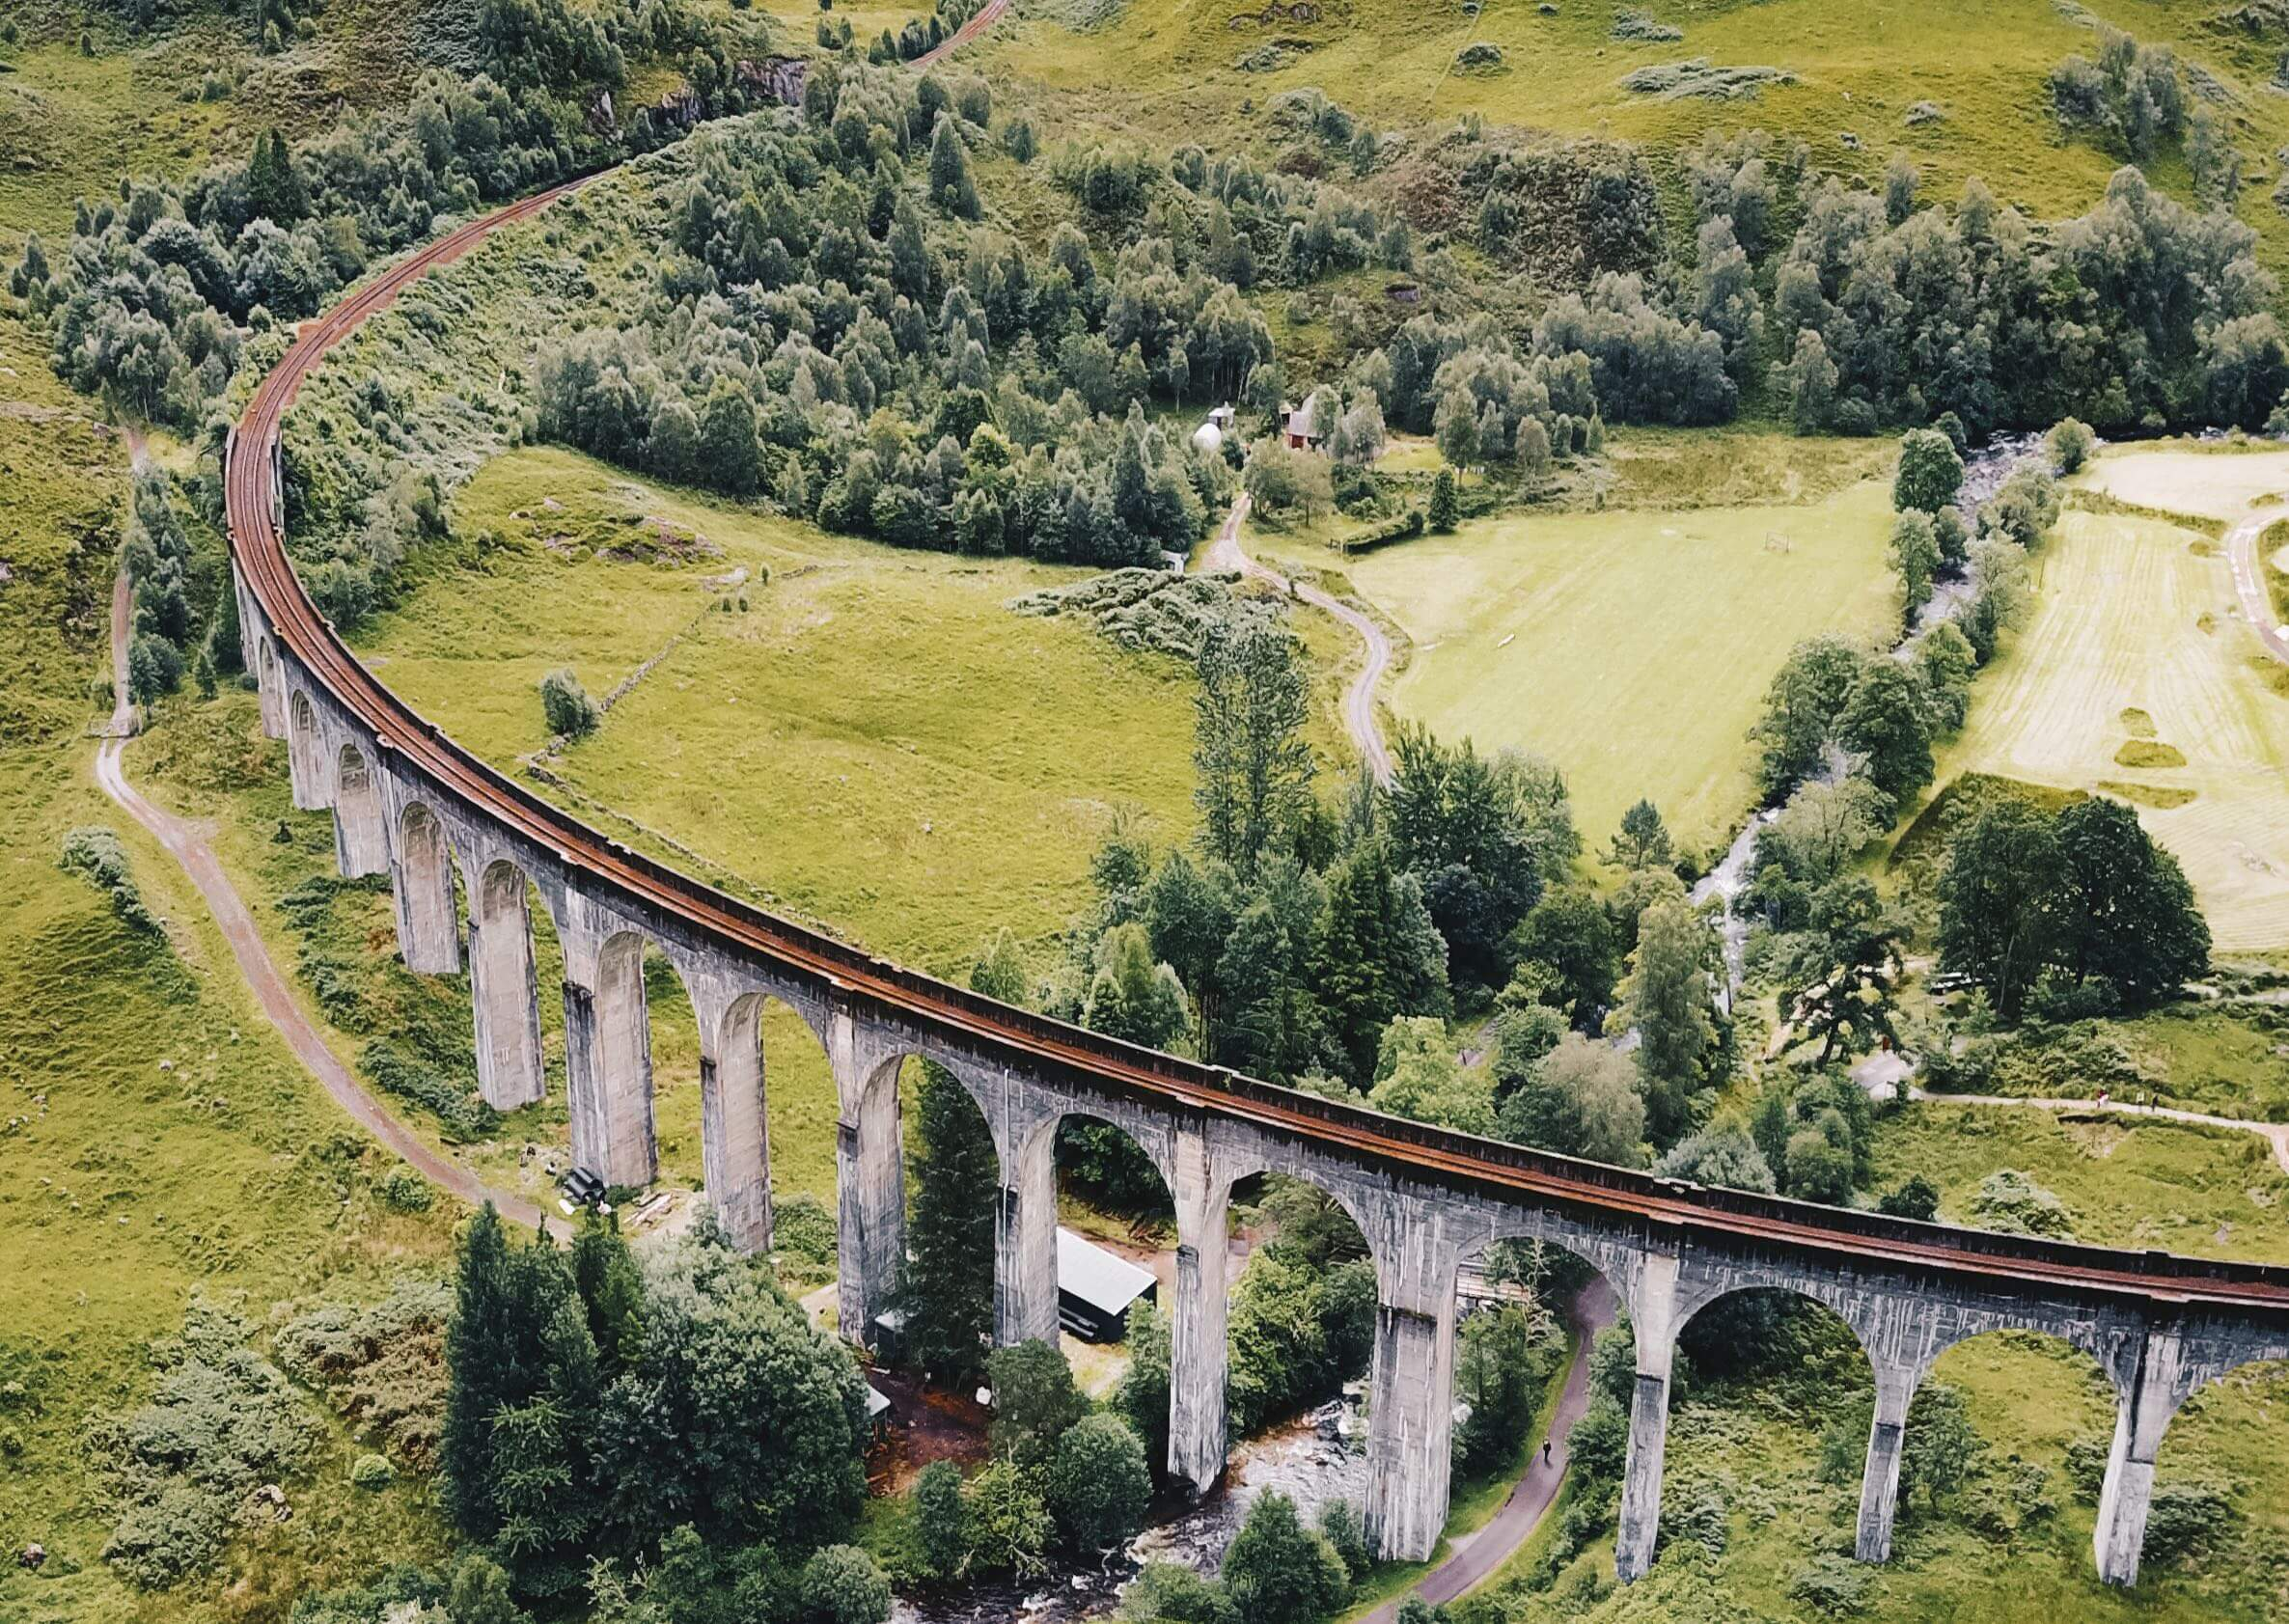 Take a memorable journey over Glenfinnan Viaduct in Scotland.